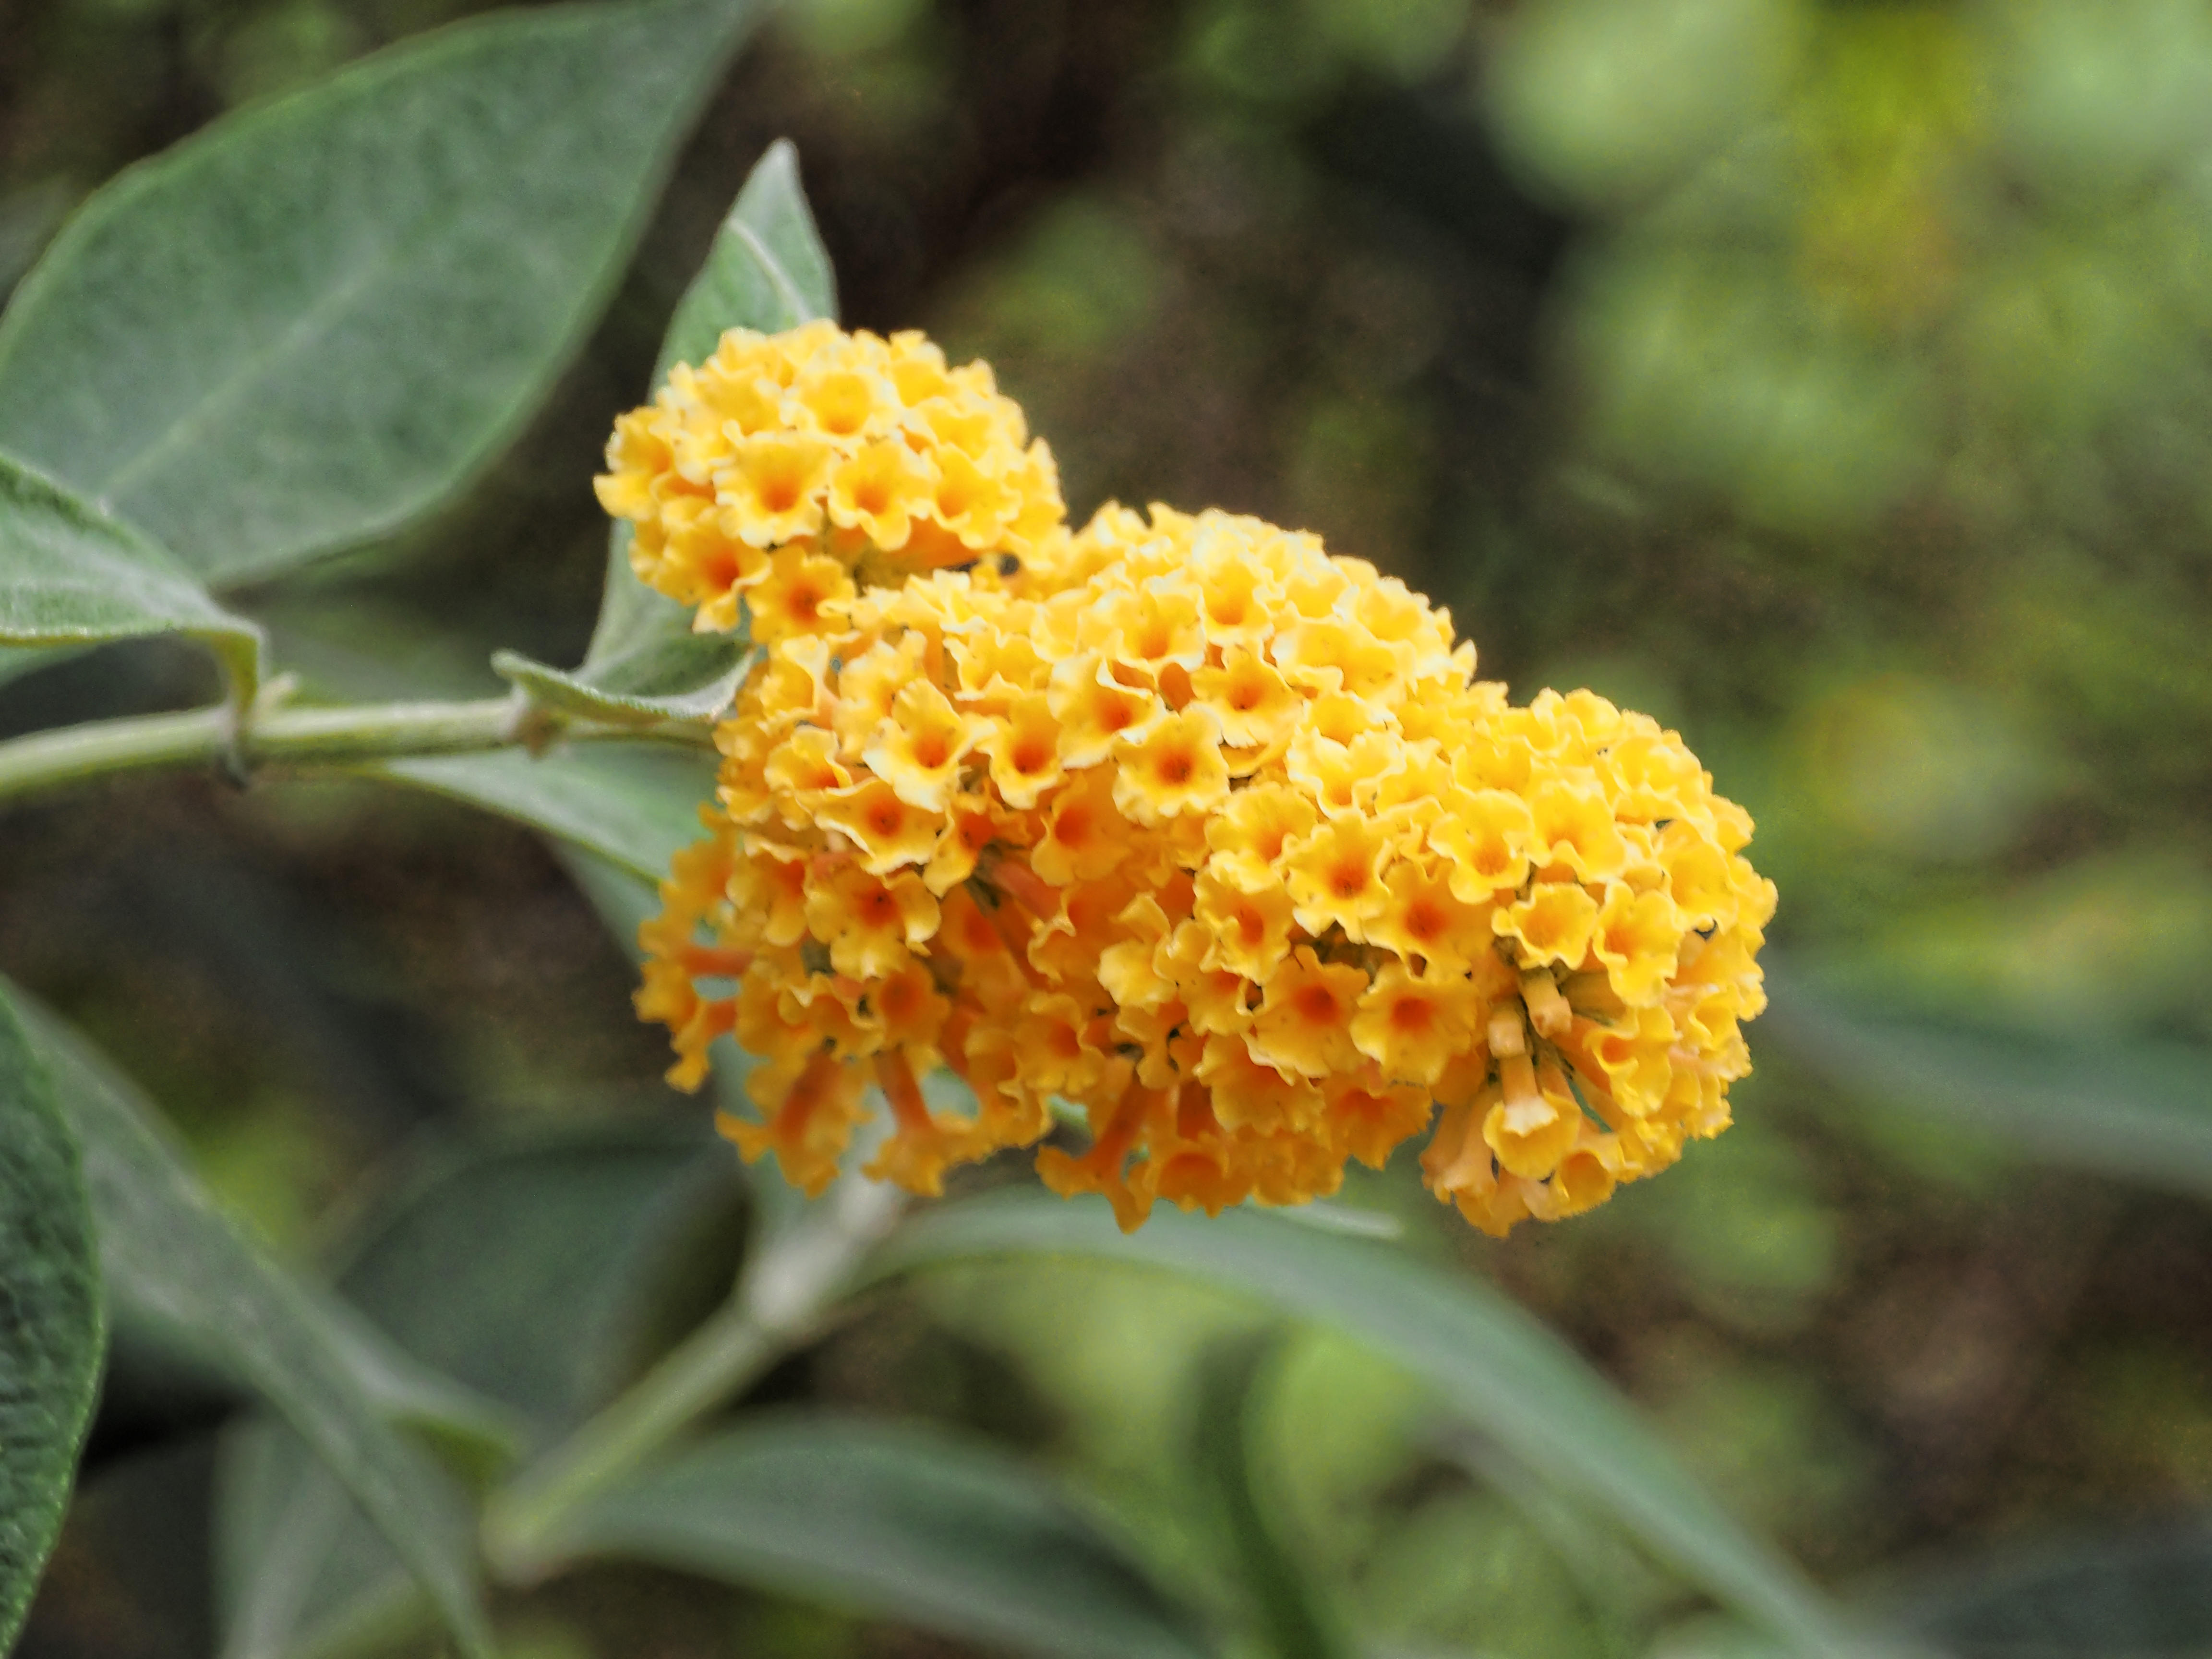 This should be Buddleja-1.jpeg.  Is it missing?